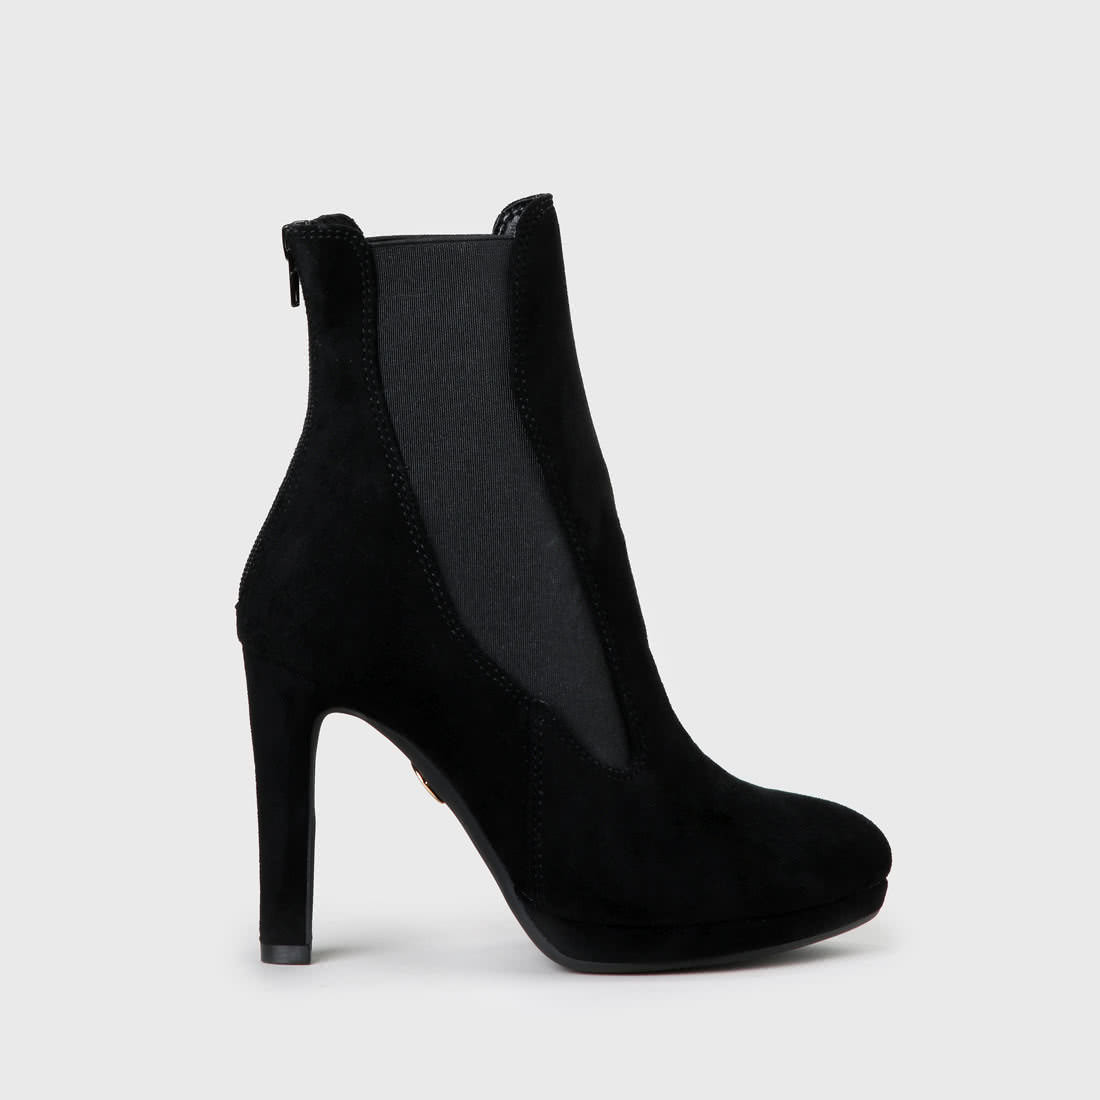 35db0db6107 Feena Chelsea Boot black faux leather